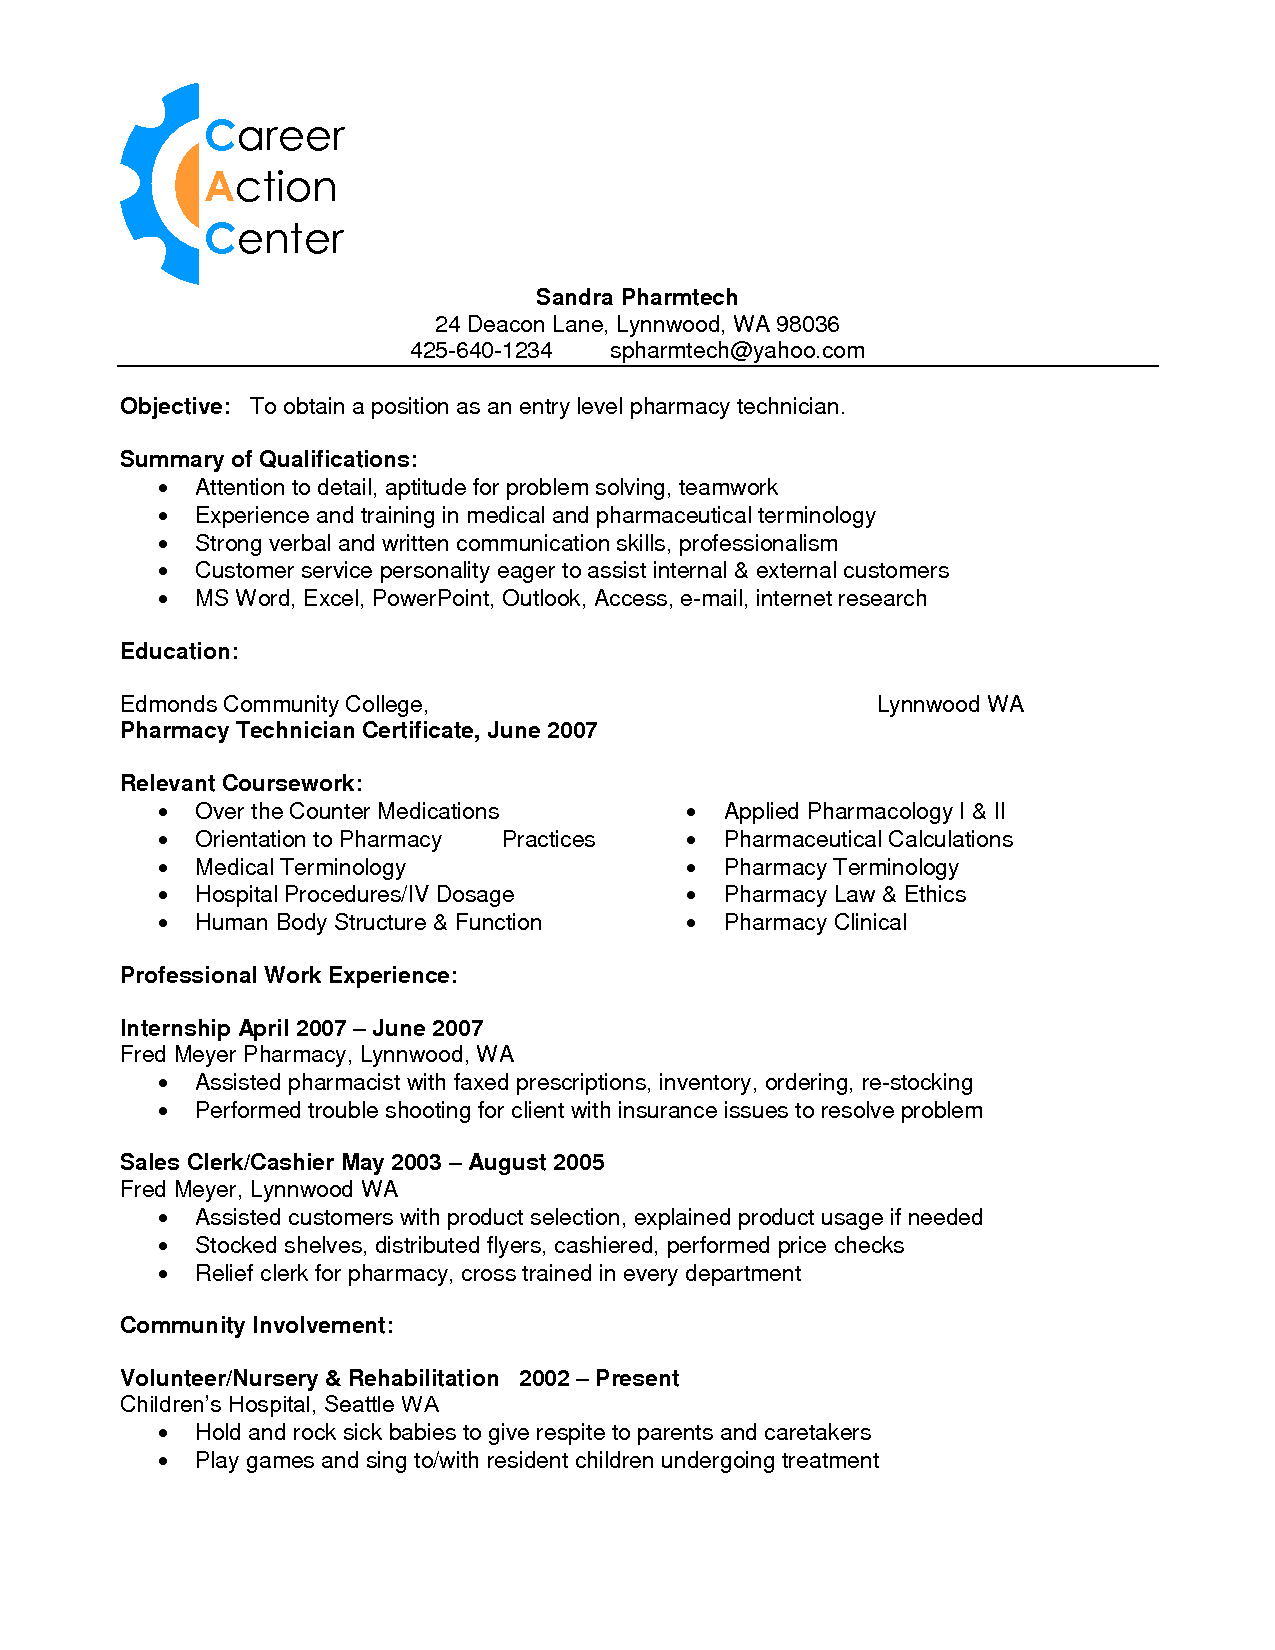 Bank Teller Job Description For Resume Sample Resume For Bank Teller At Entry Level  Httpwww